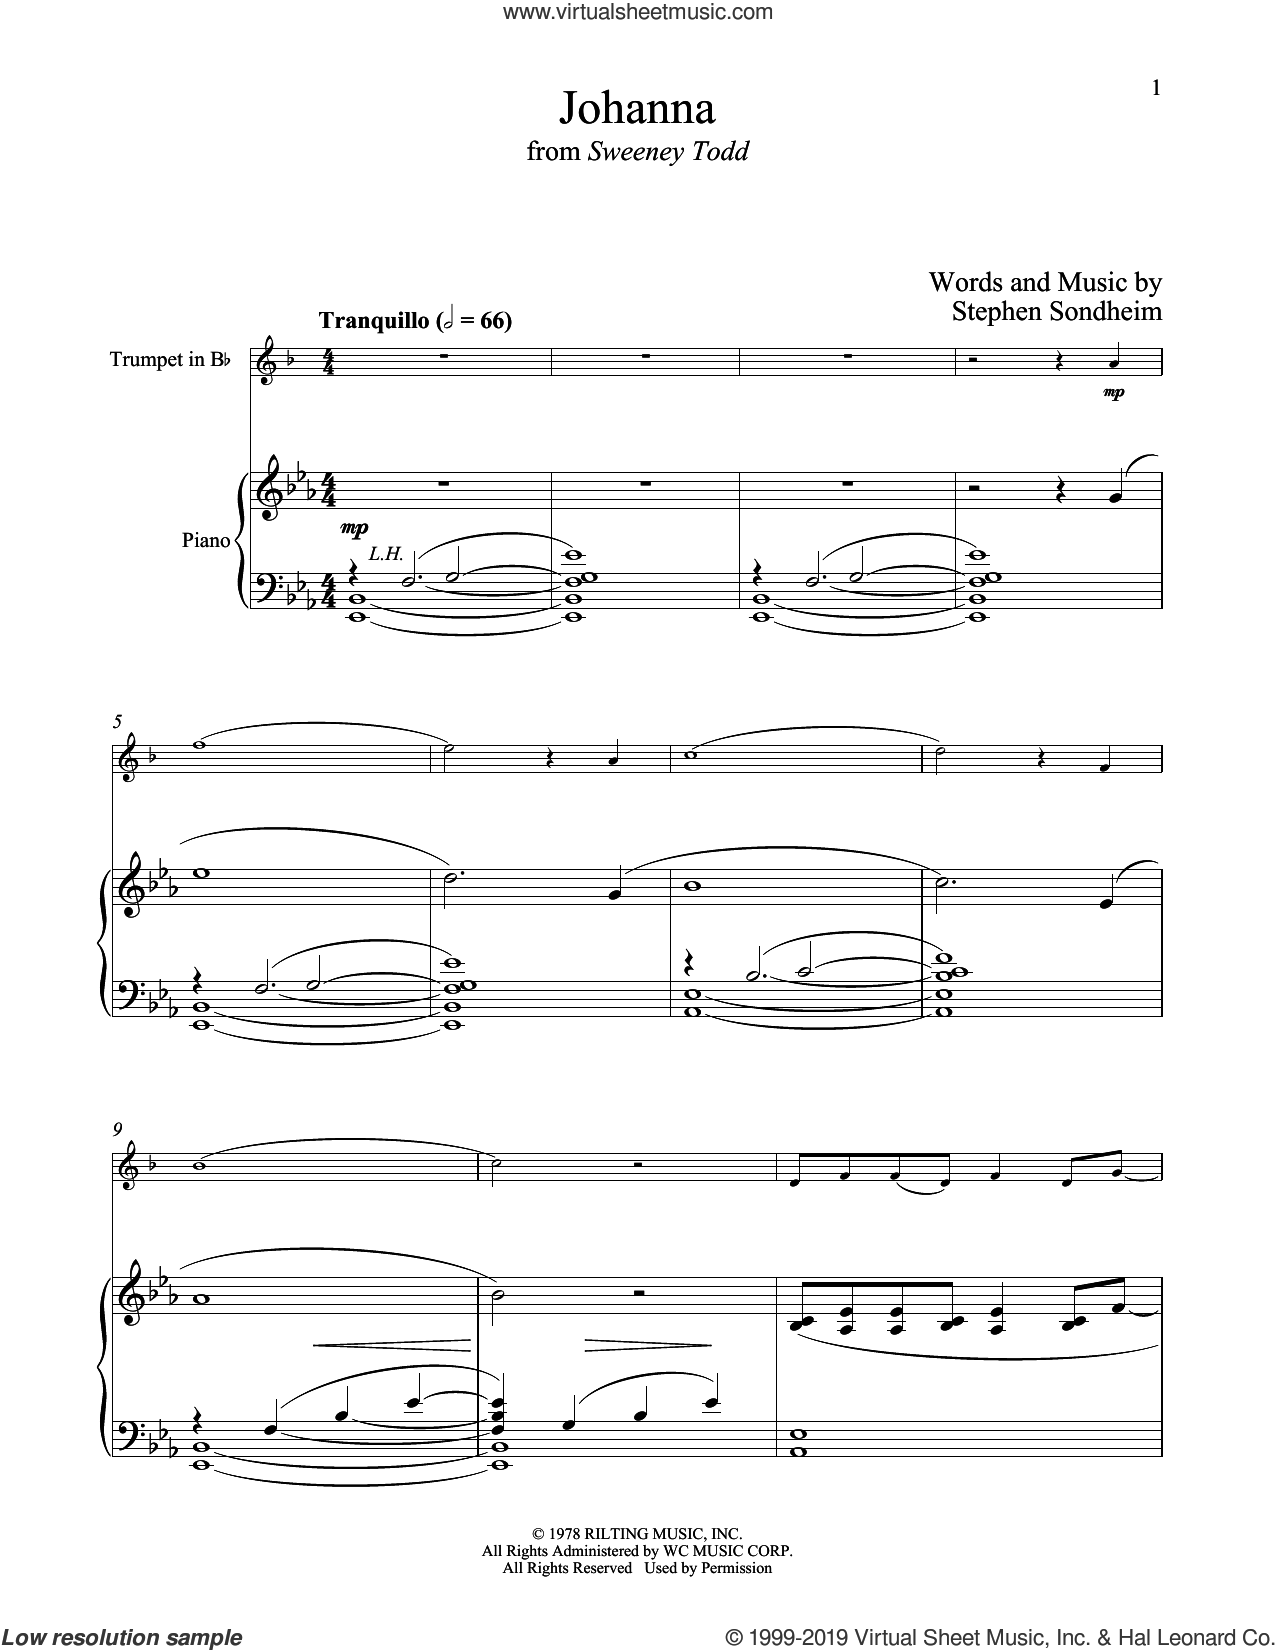 Johanna (from Sweeney Todd) sheet music for trumpet and piano by Stephen Sondheim, intermediate skill level